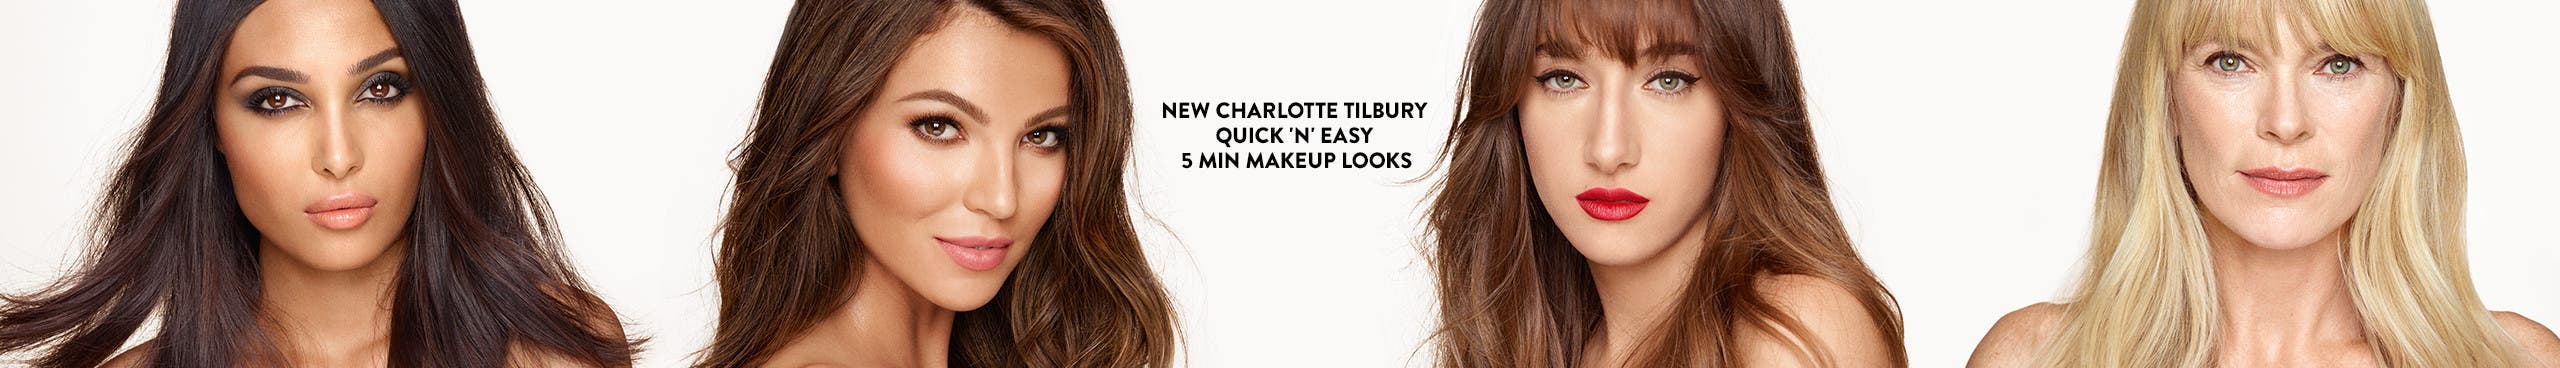 Charlotte Tilbury: Quick 'N' Easy 5 Min Makeup Looks.